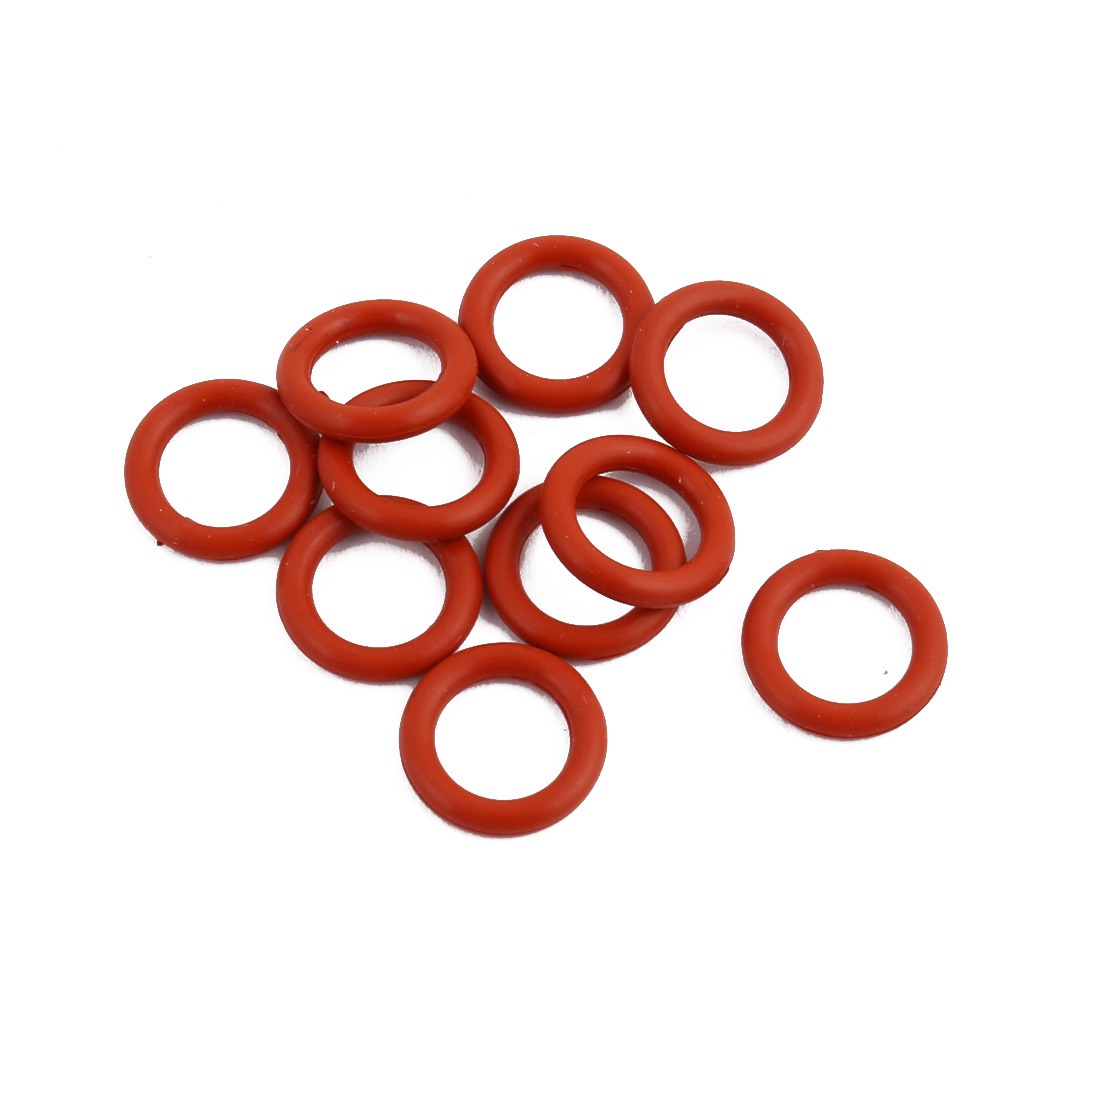 10Pcs Red Round Nitrile Butadiene Rubber NBR O-Ring 11mm OD 1.9mm Width